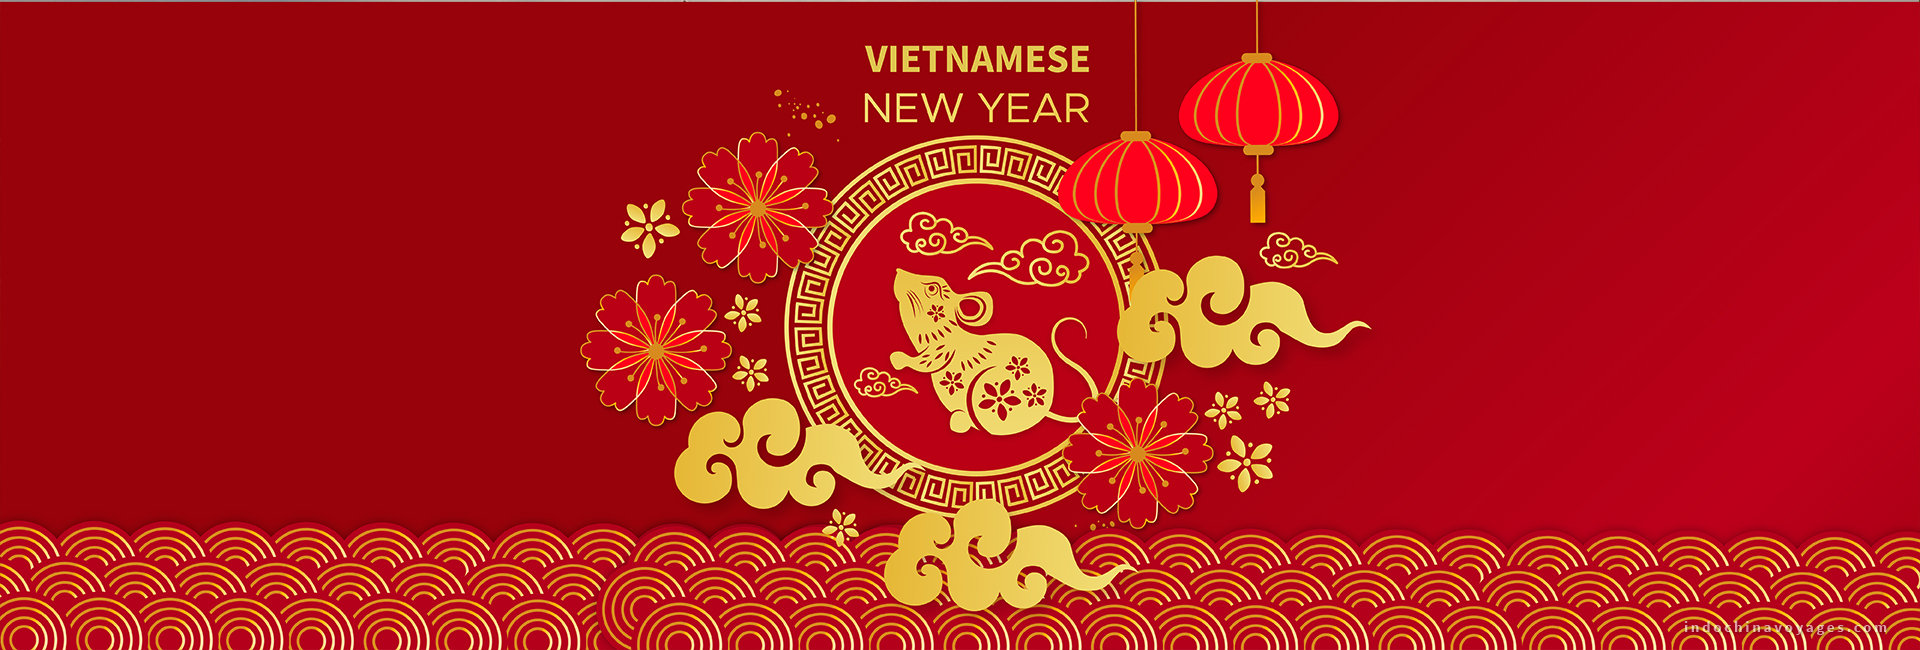 Vietnamese New Year 2020 – All you need to know